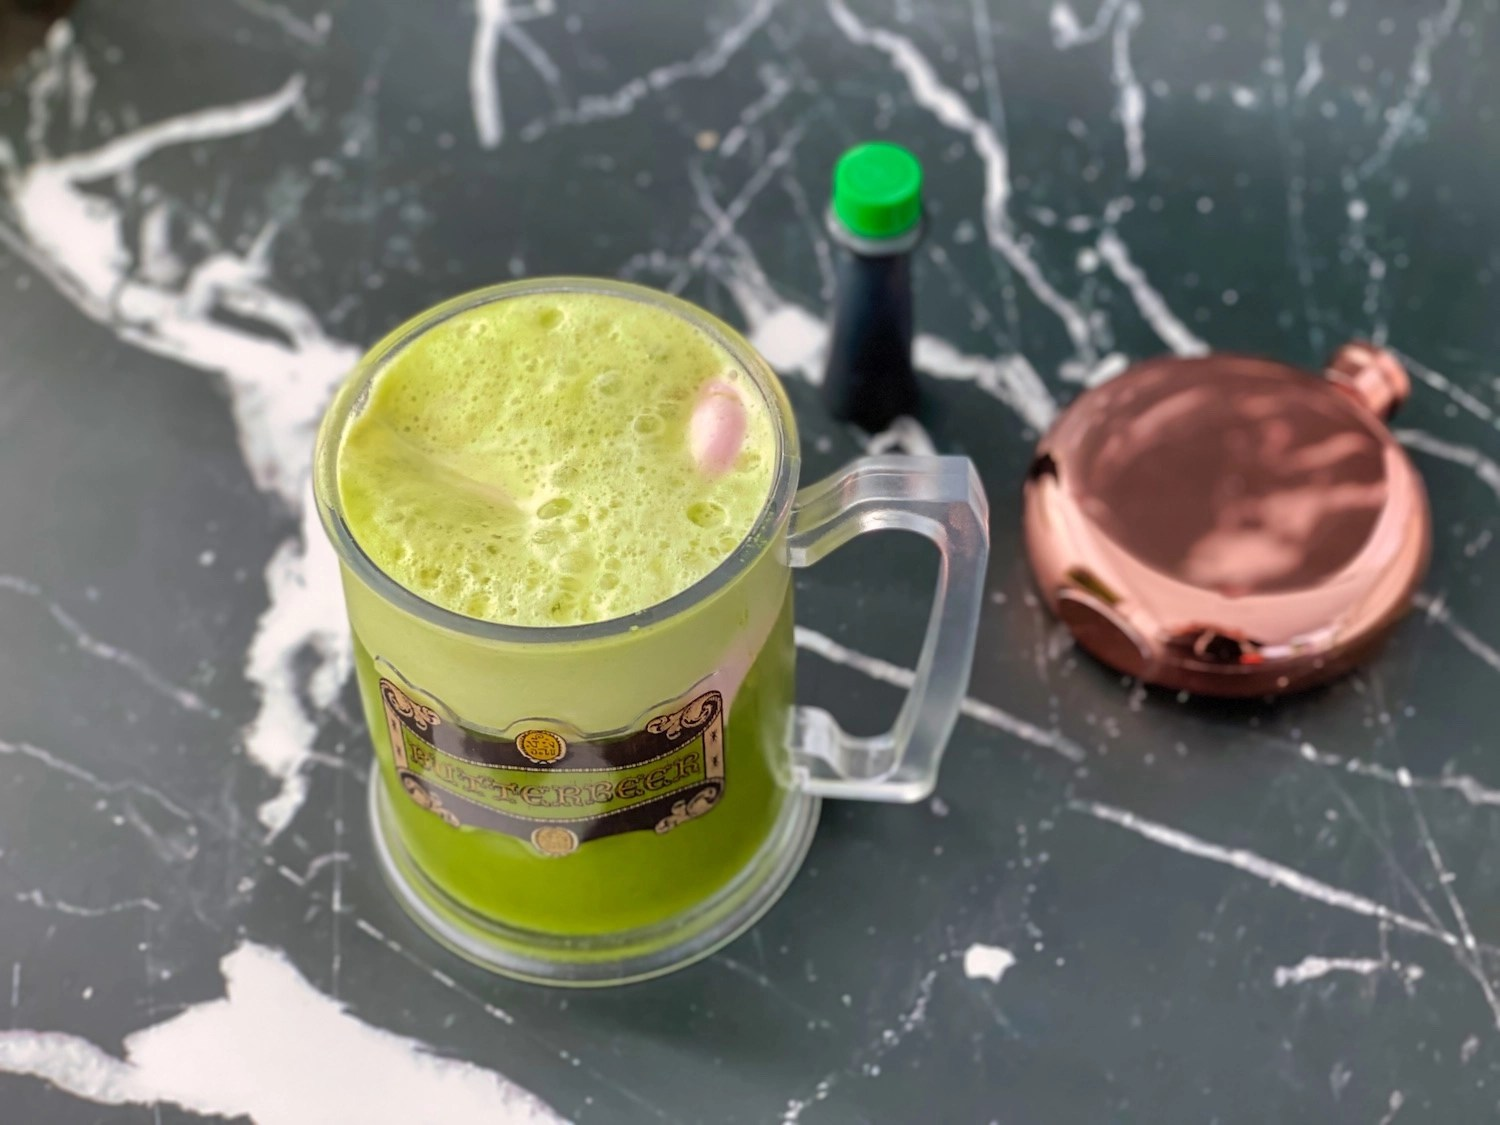 How to Make Polyjuice Potion - Drink